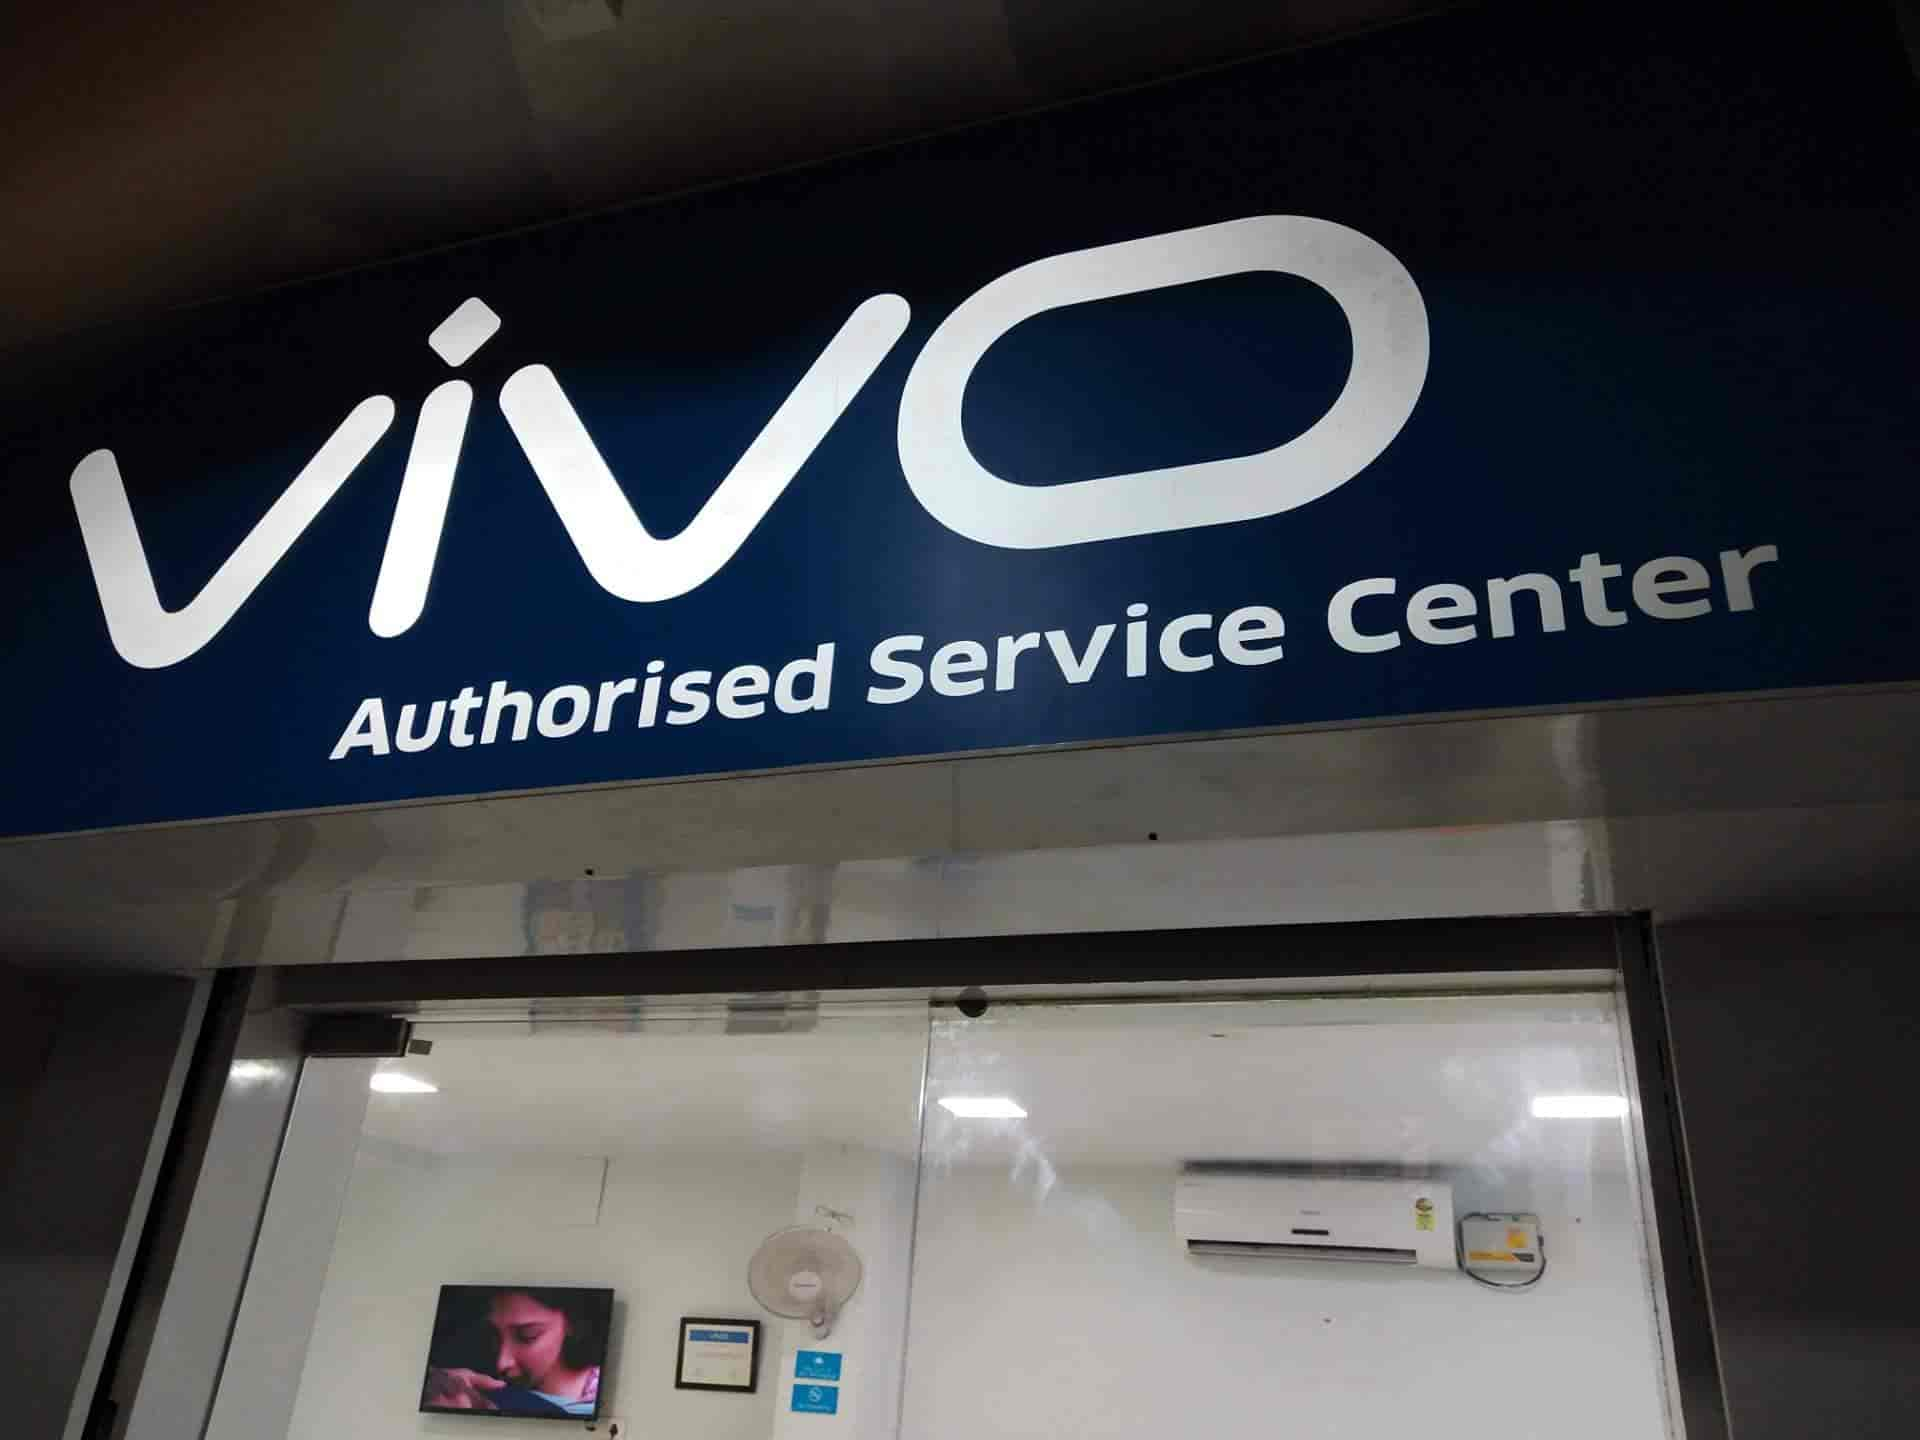 Vivo Service Center Churu City Mobile Phone Repair Services In Churu Justdial